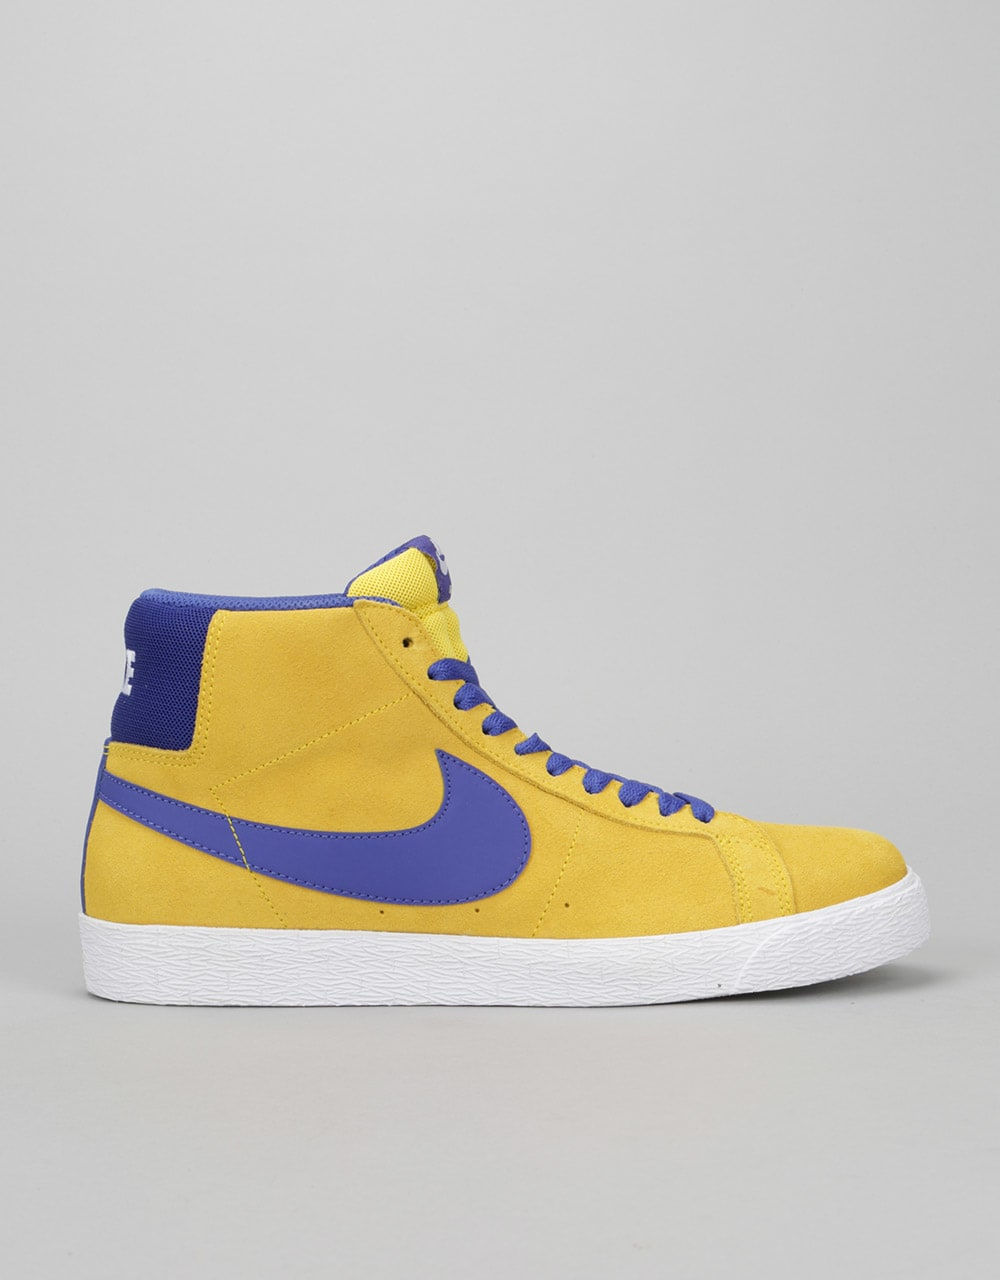 online store a96e6 555a4 clearance nike sb blazer mid skate shoes tour yellow deep night white mens  mid top skate